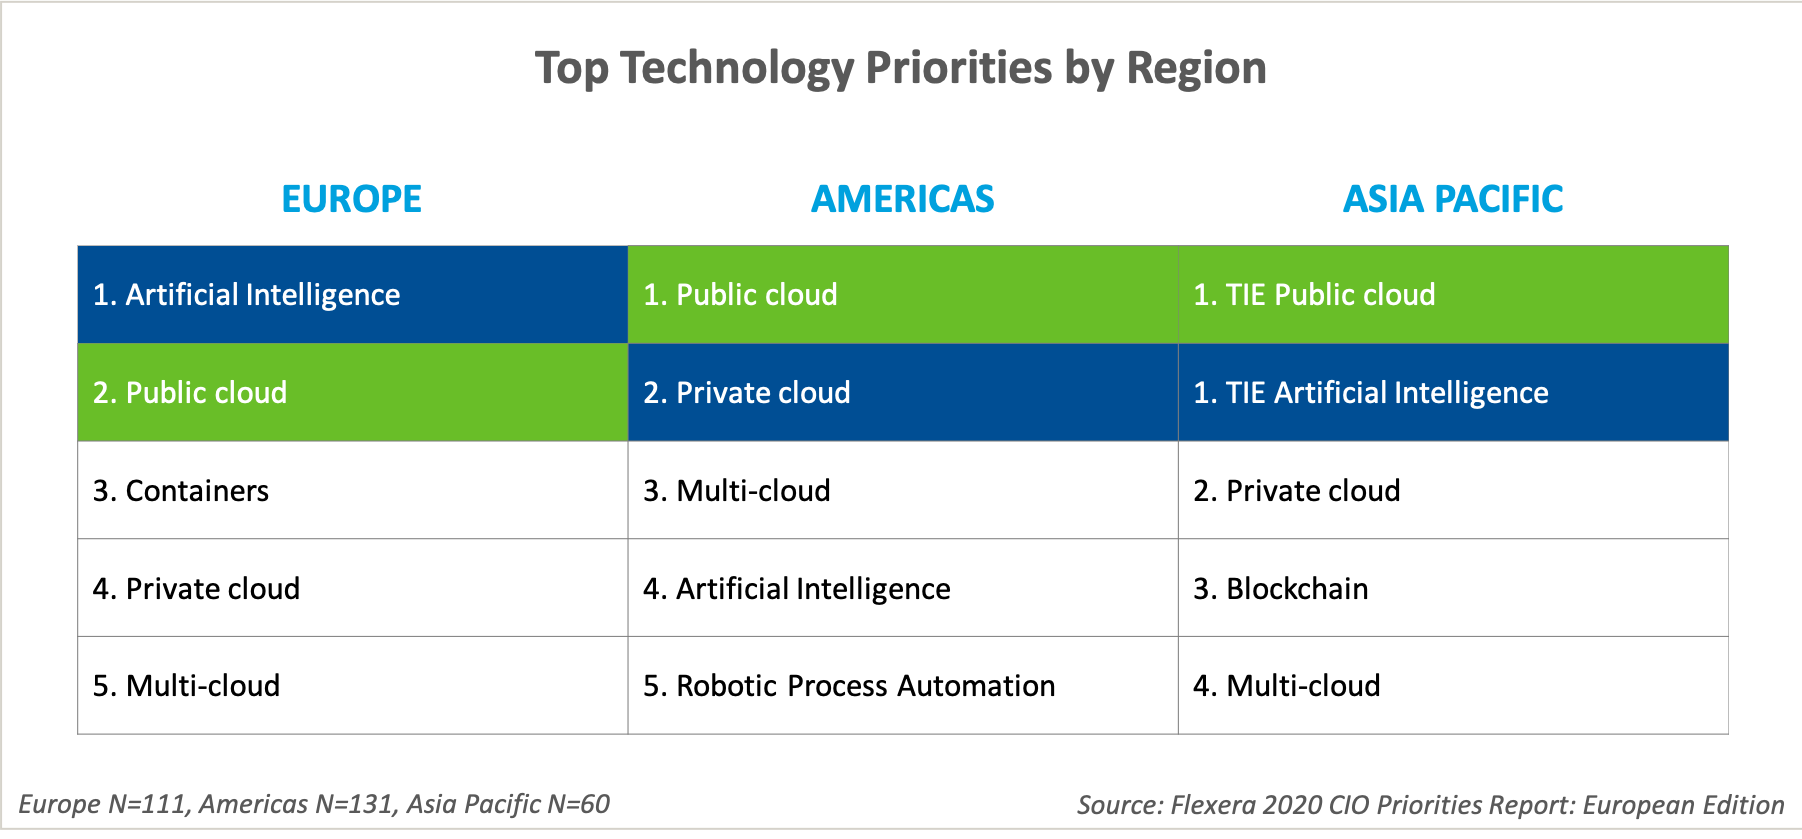 Top Technology Priorities by Region